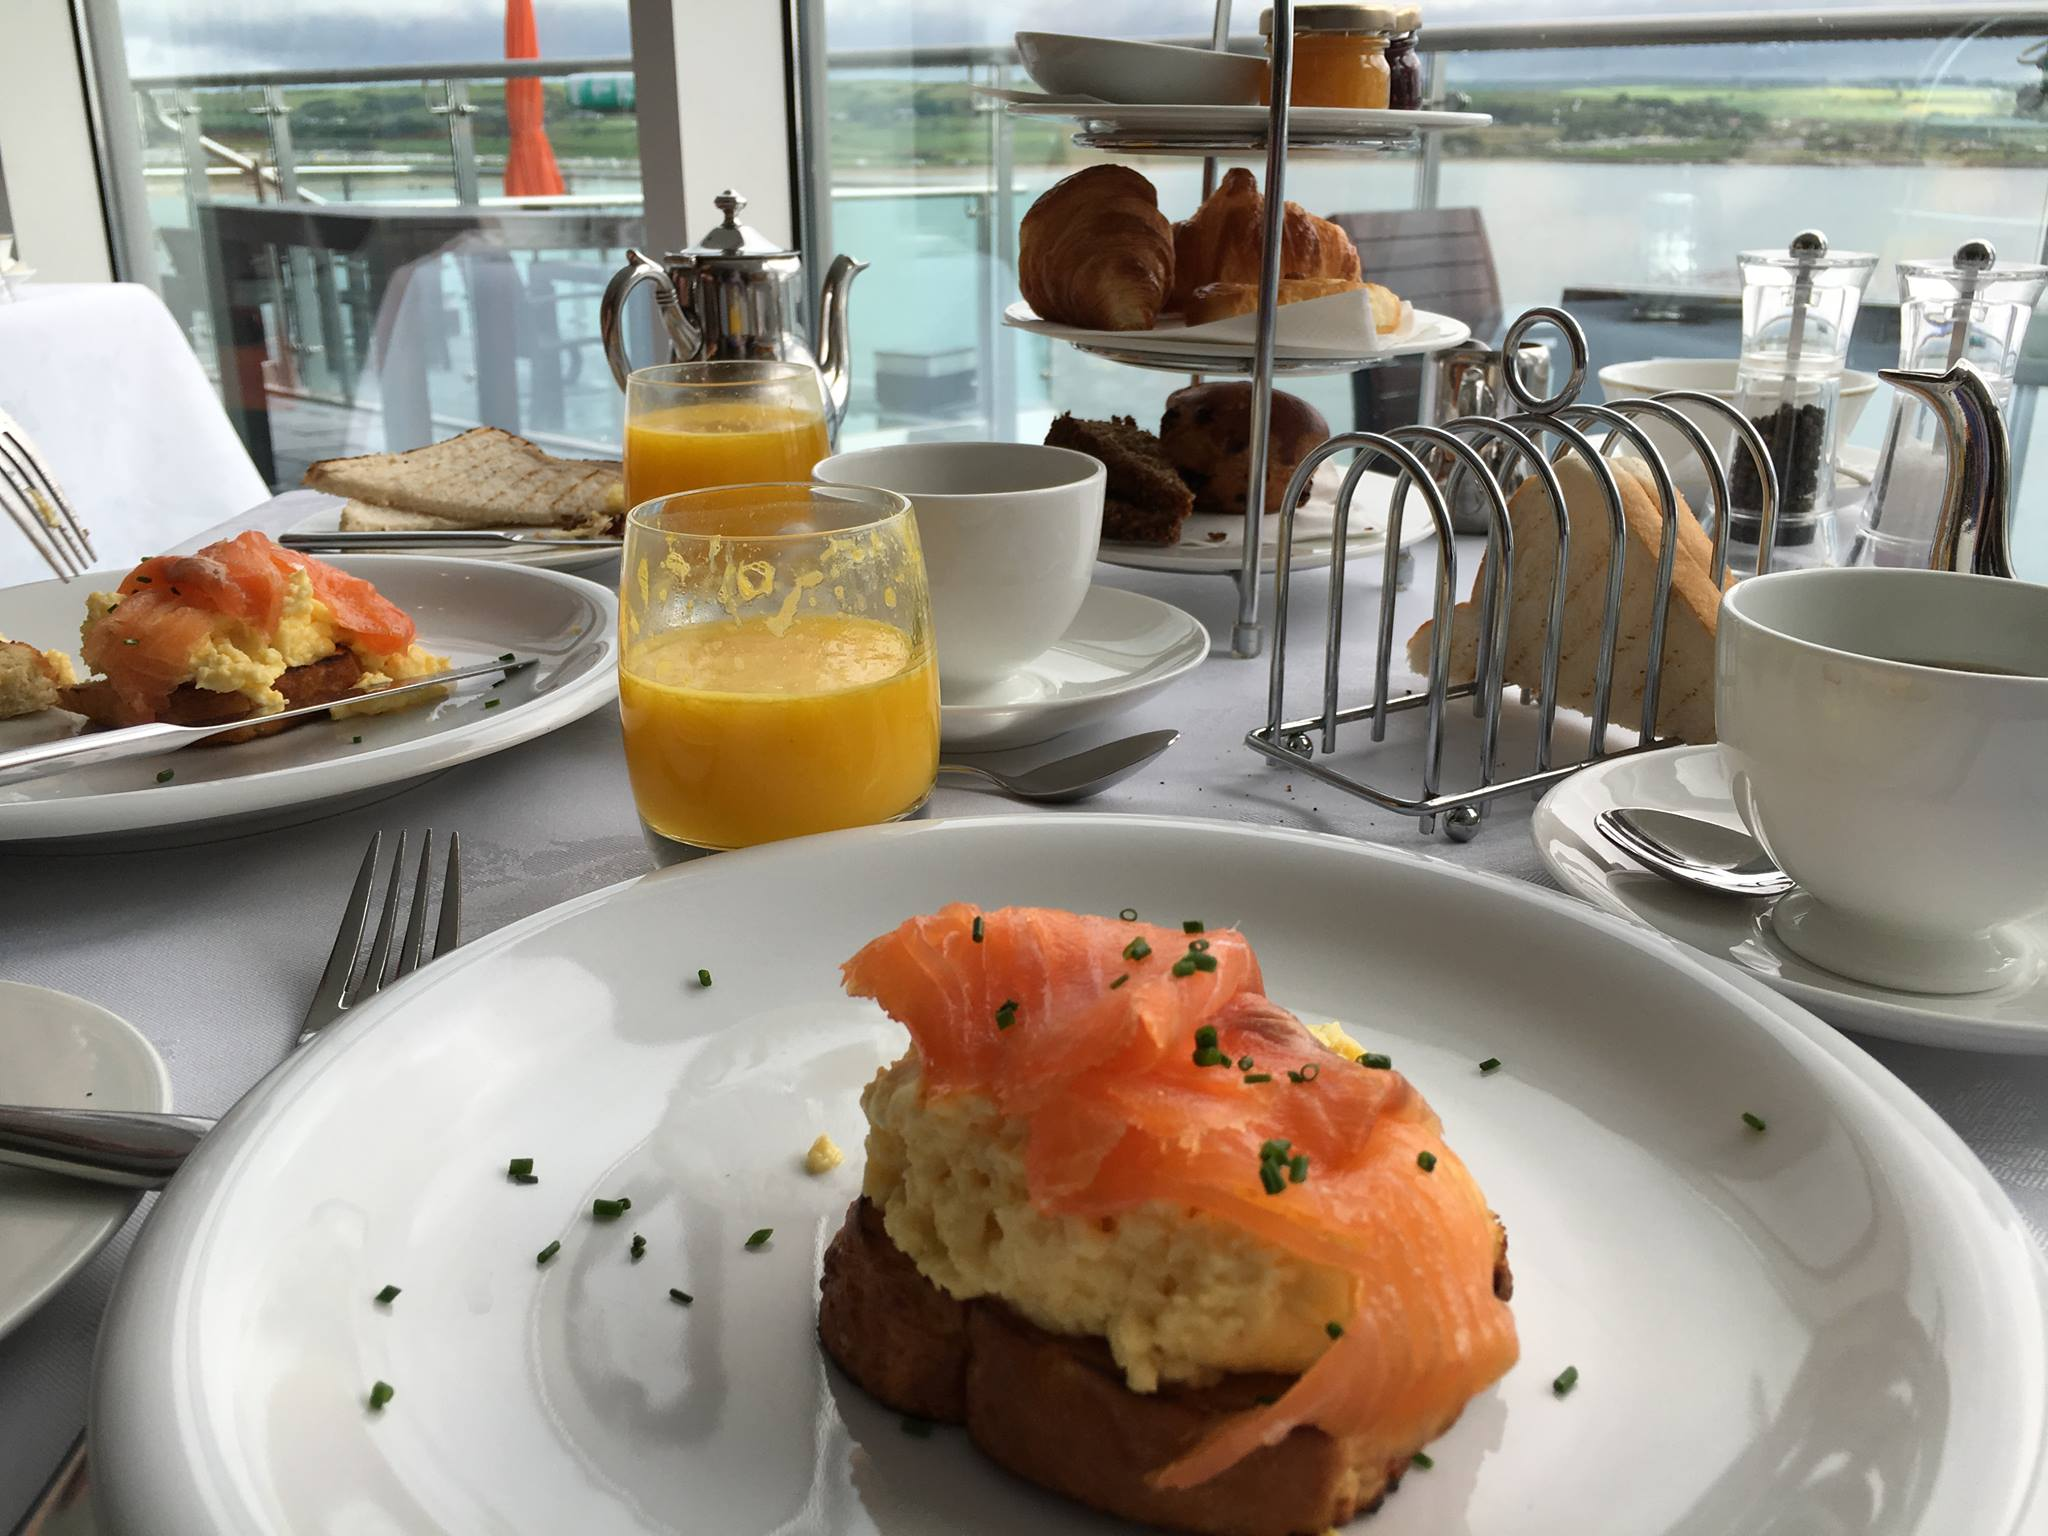 An amazing breakfast - smoked salmon and eggs on Irish toast with freshly-squeezed orange juice and homemade scones - at our splurge hotel in Ireland (Cliff House Hotel, Ardmore, Co. Waterford)